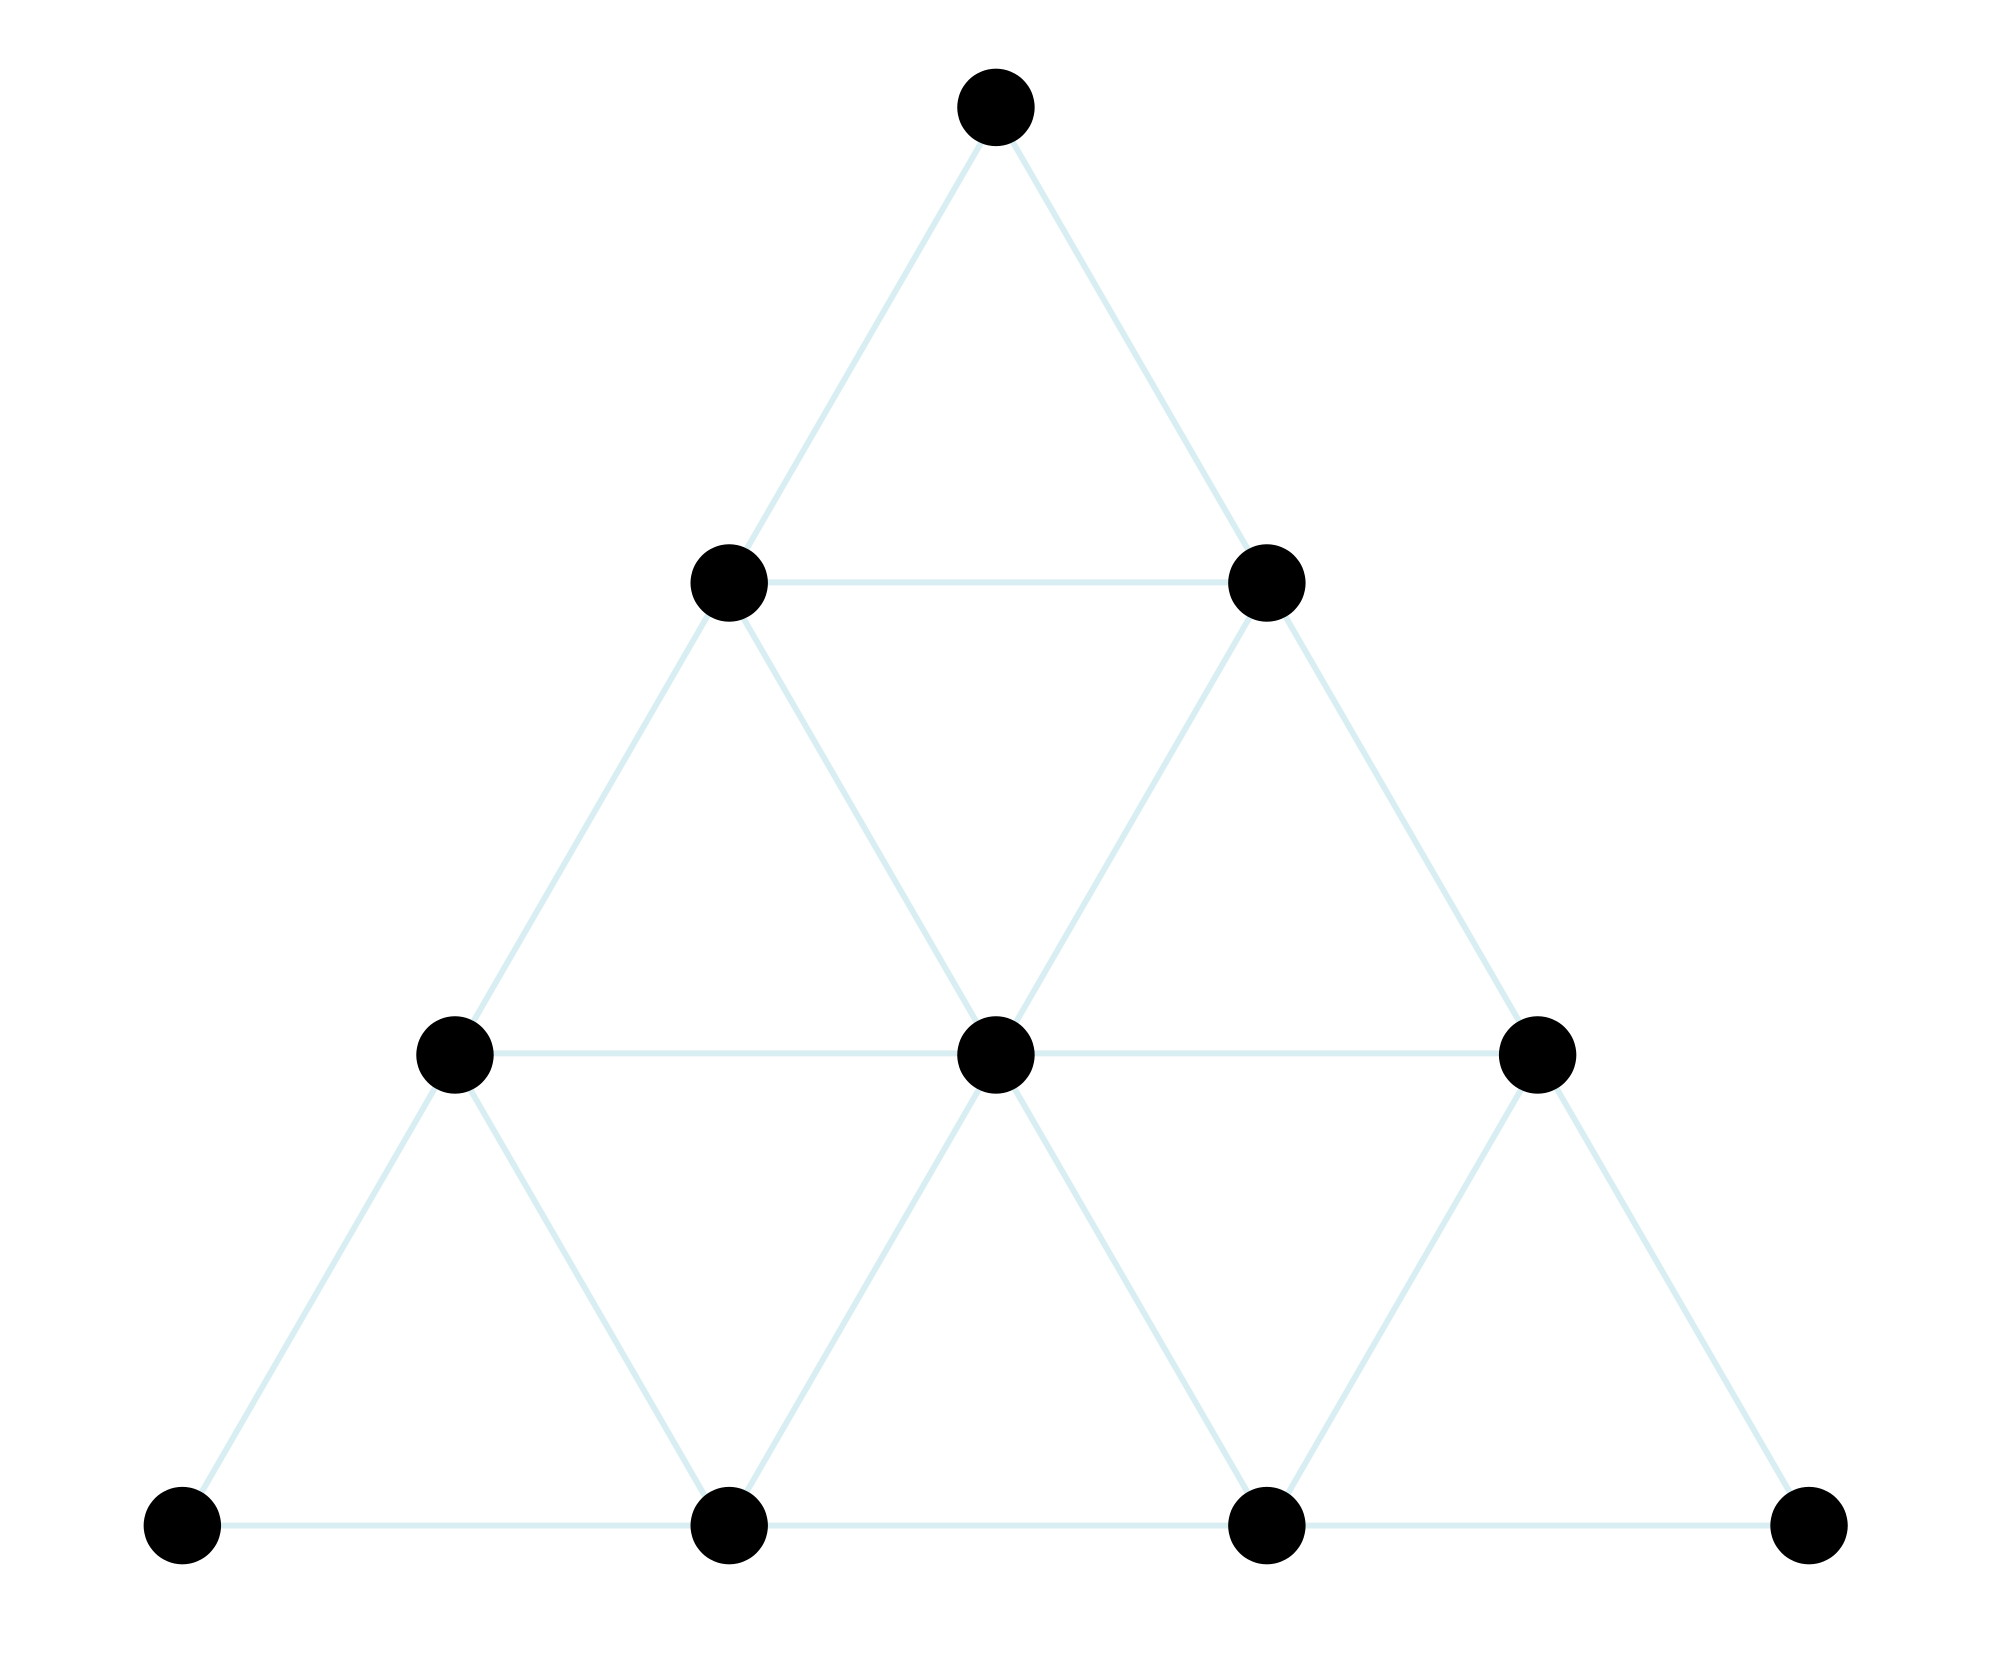 pythagoras theorem crystal clear mathematics diagram of a tetractys as a triangle ten dots in four rows of one